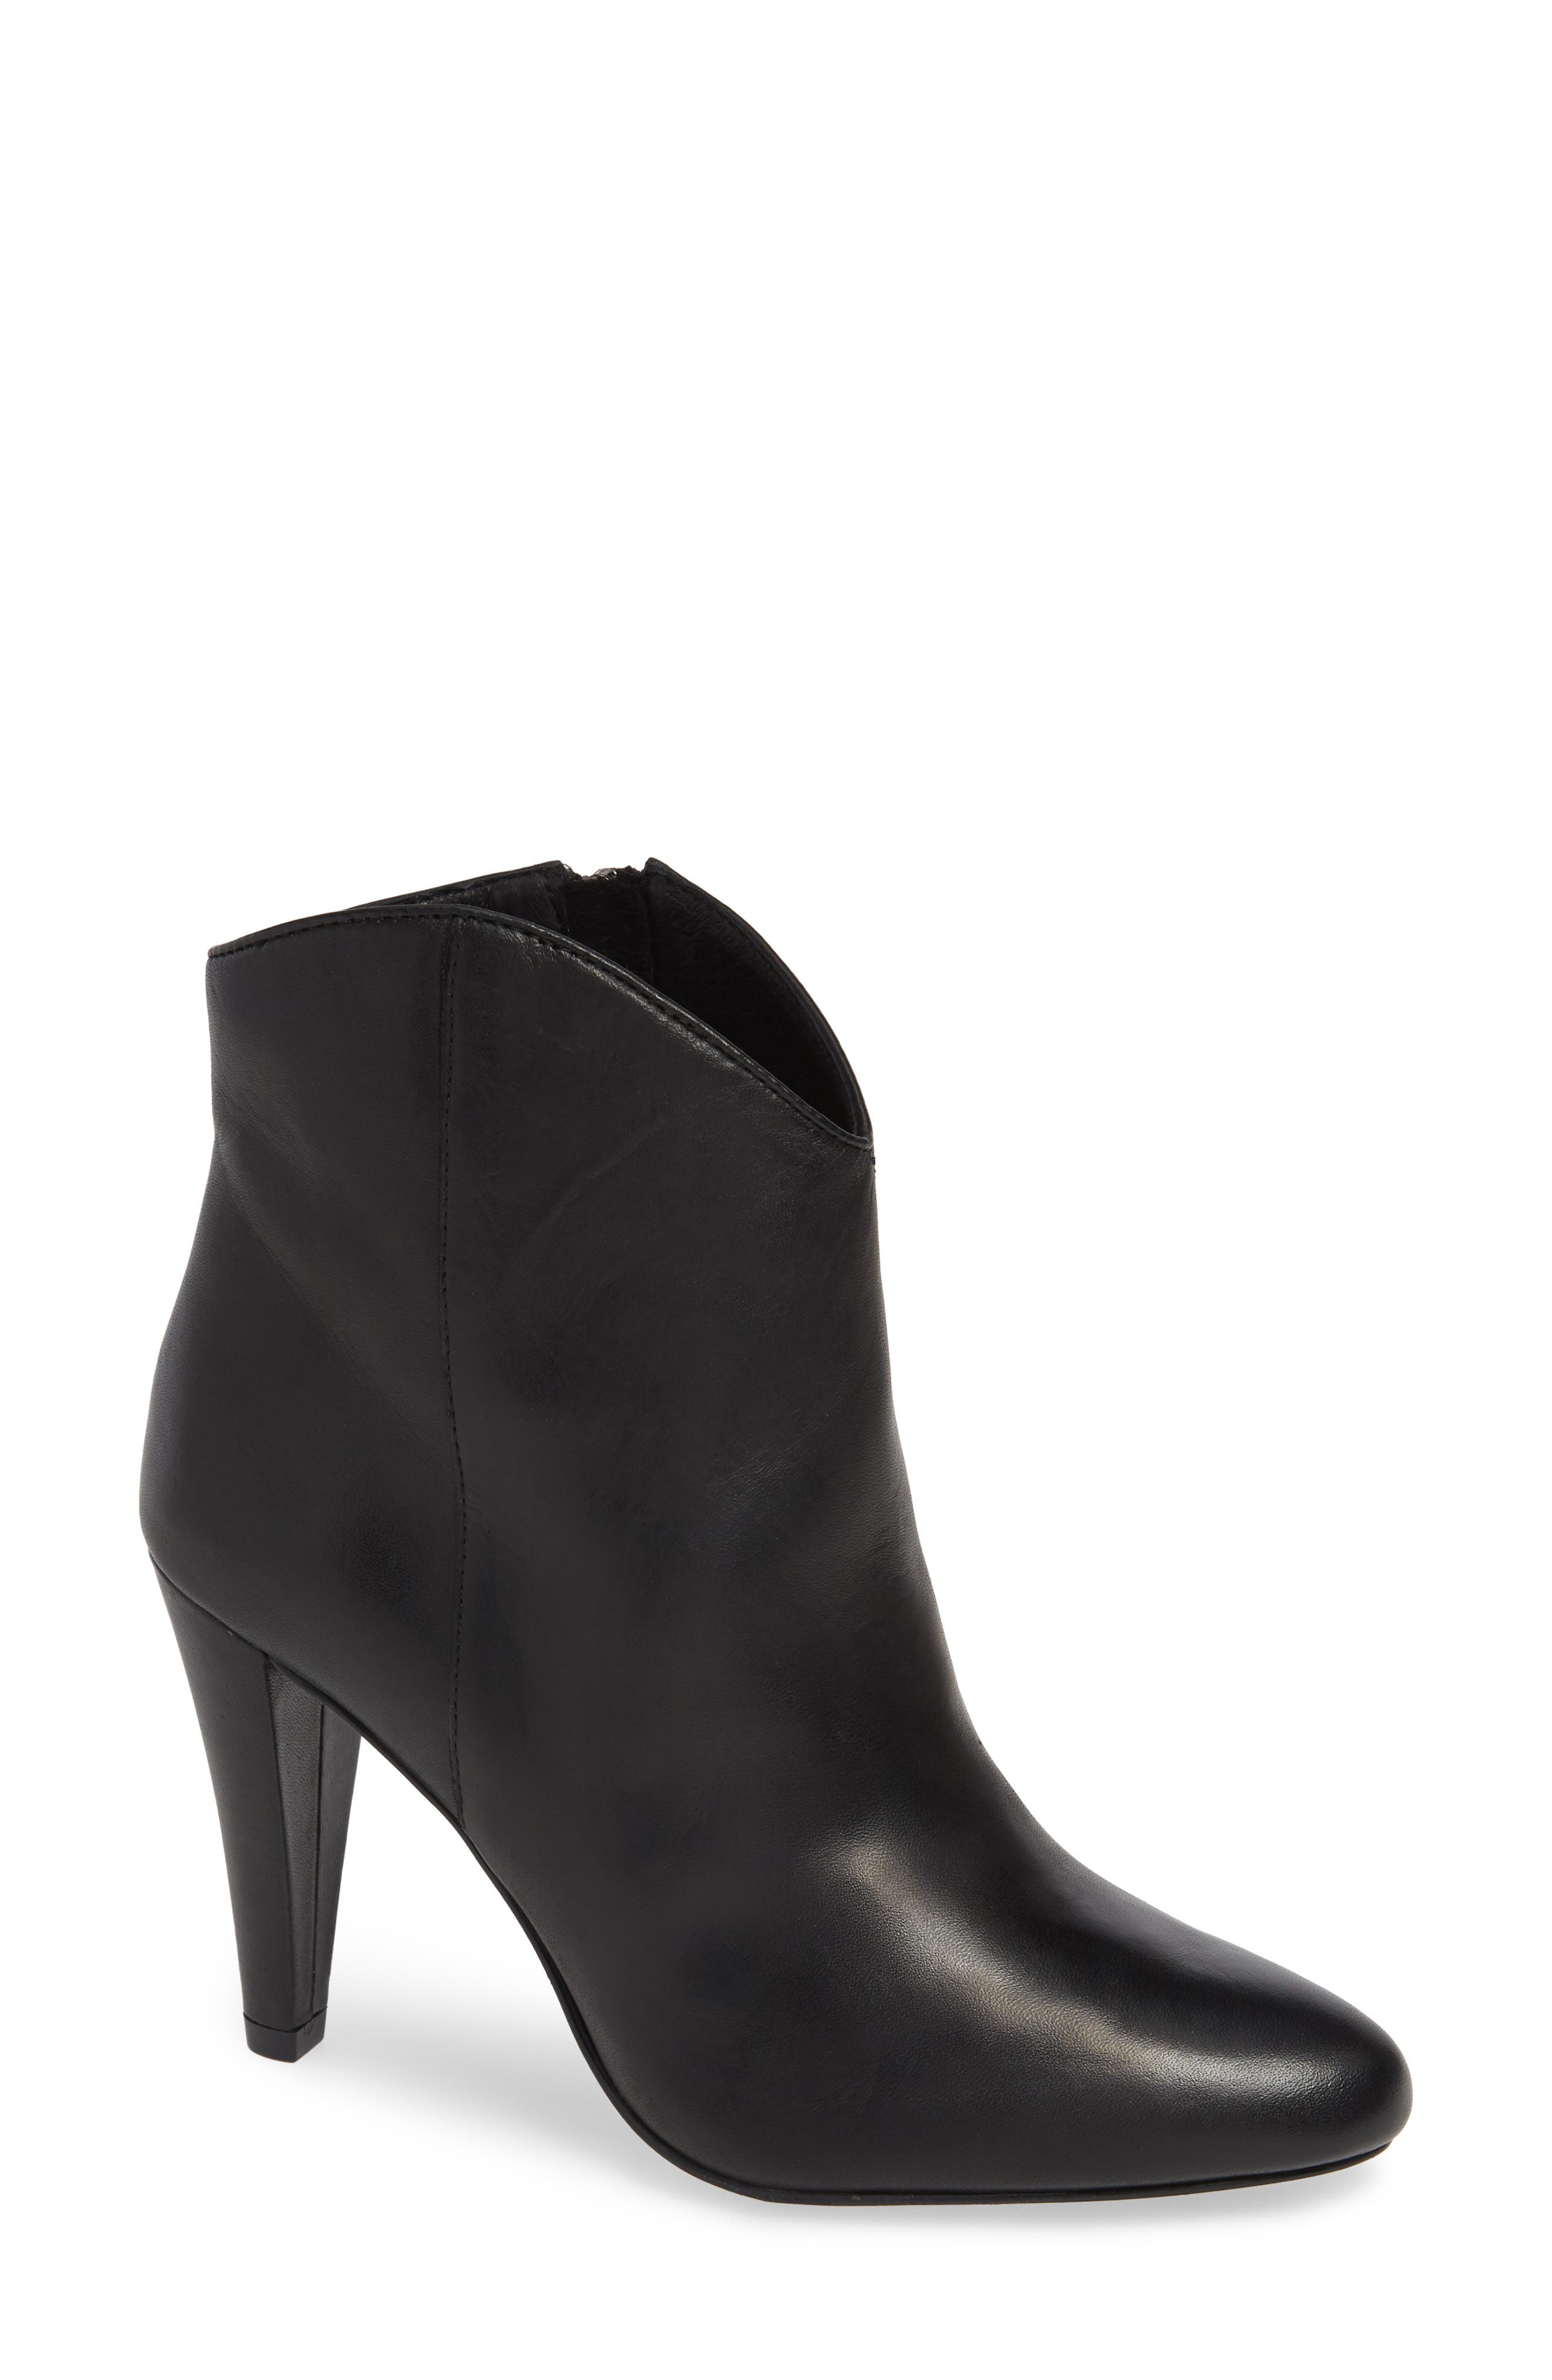 Makayla Bootie,                             Main thumbnail 1, color,                             BLACK LEATHER